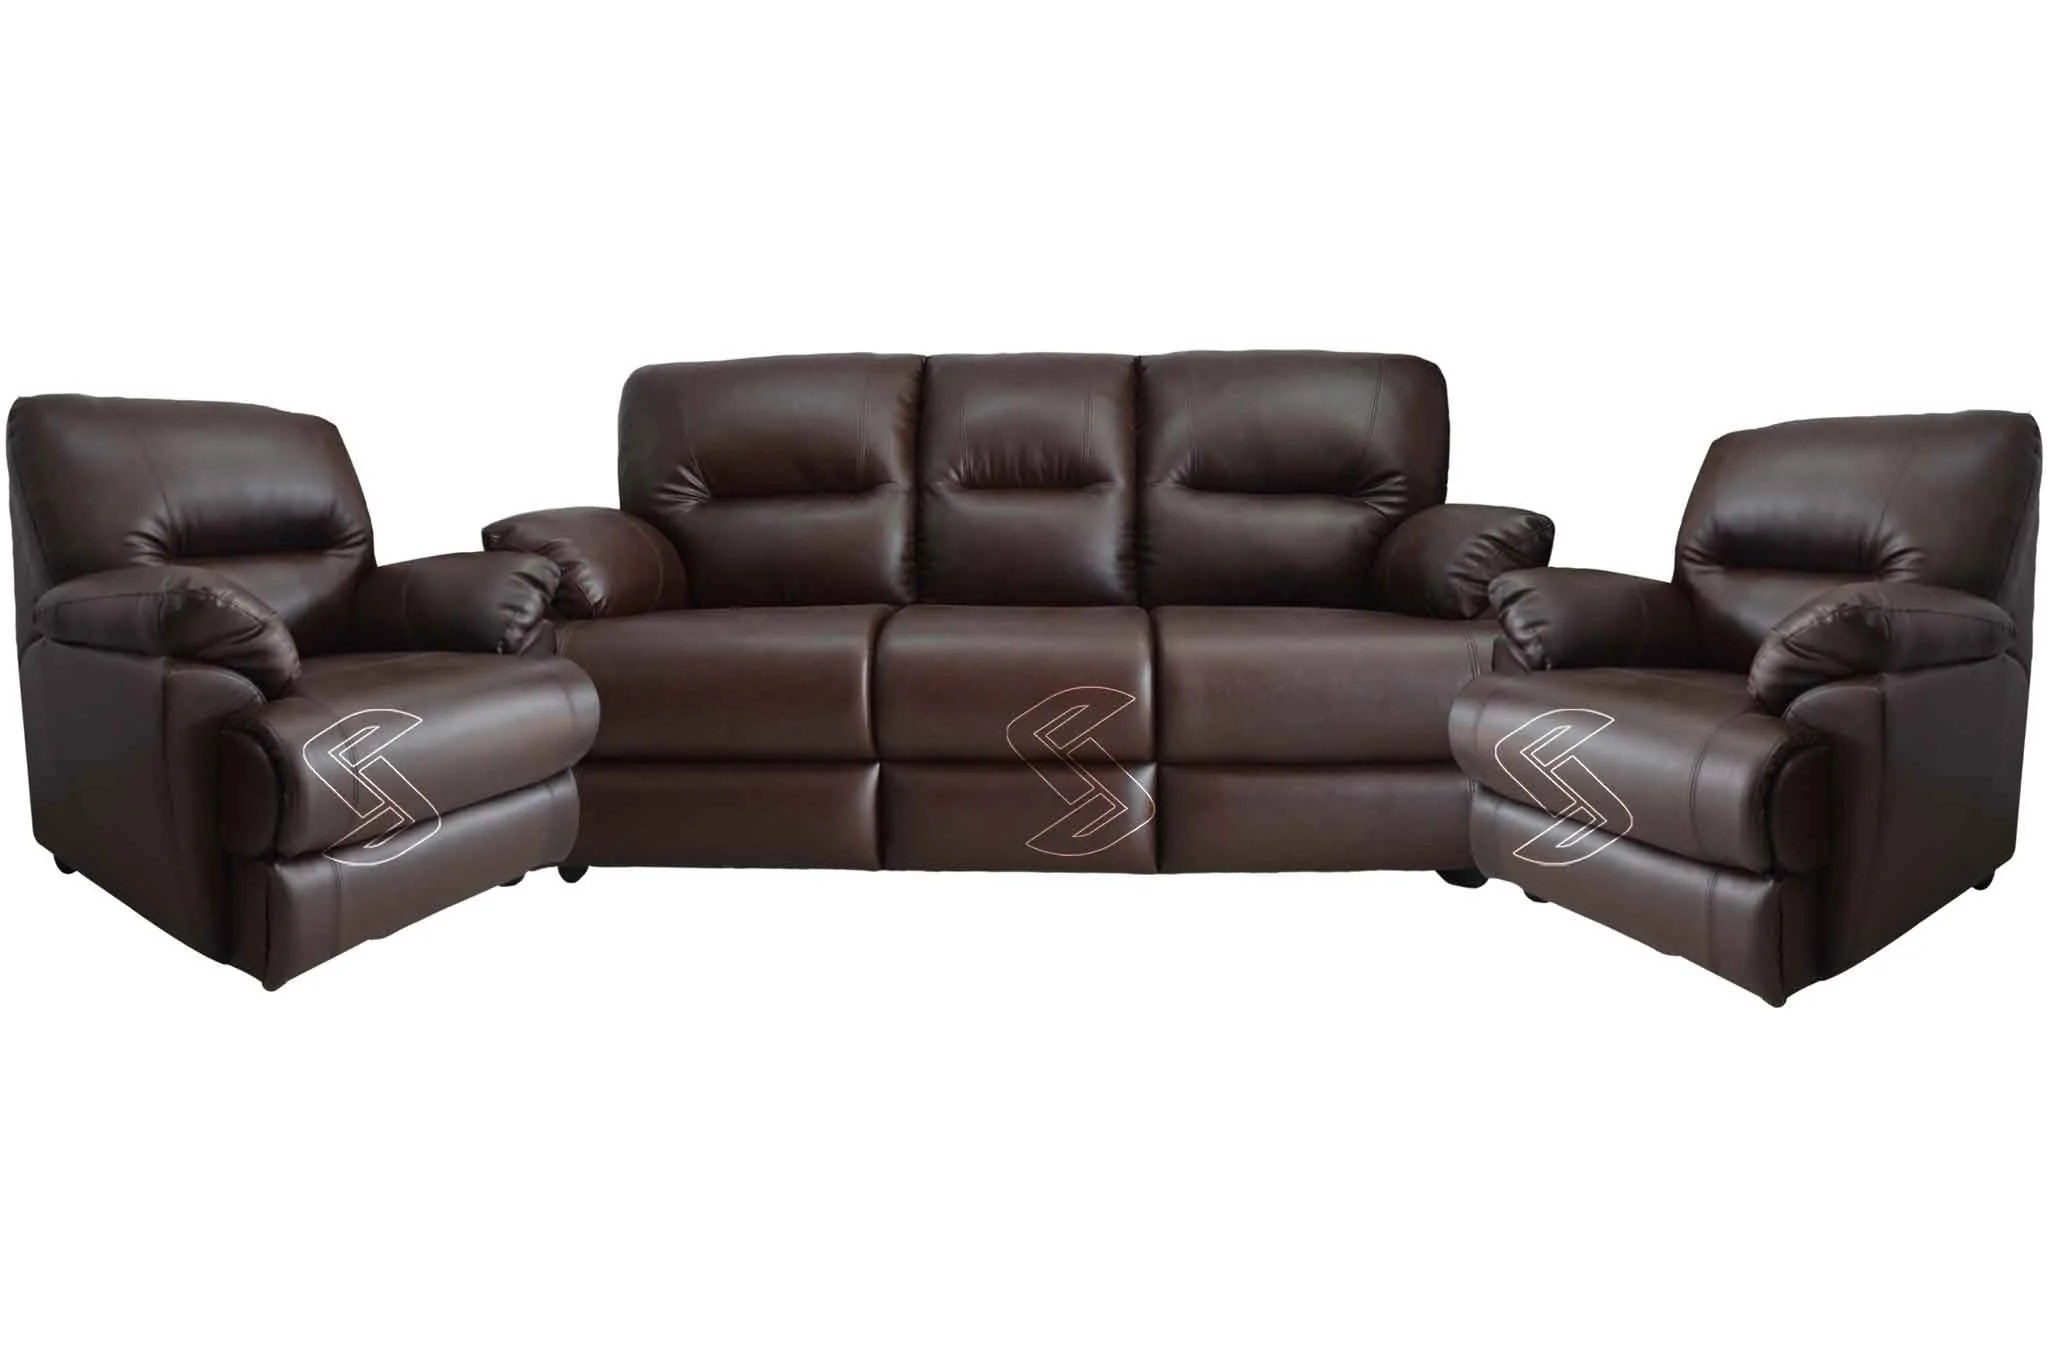 Sofa Set Online Losco Leatherette 3 1 1 Sofa Set Dark Brown